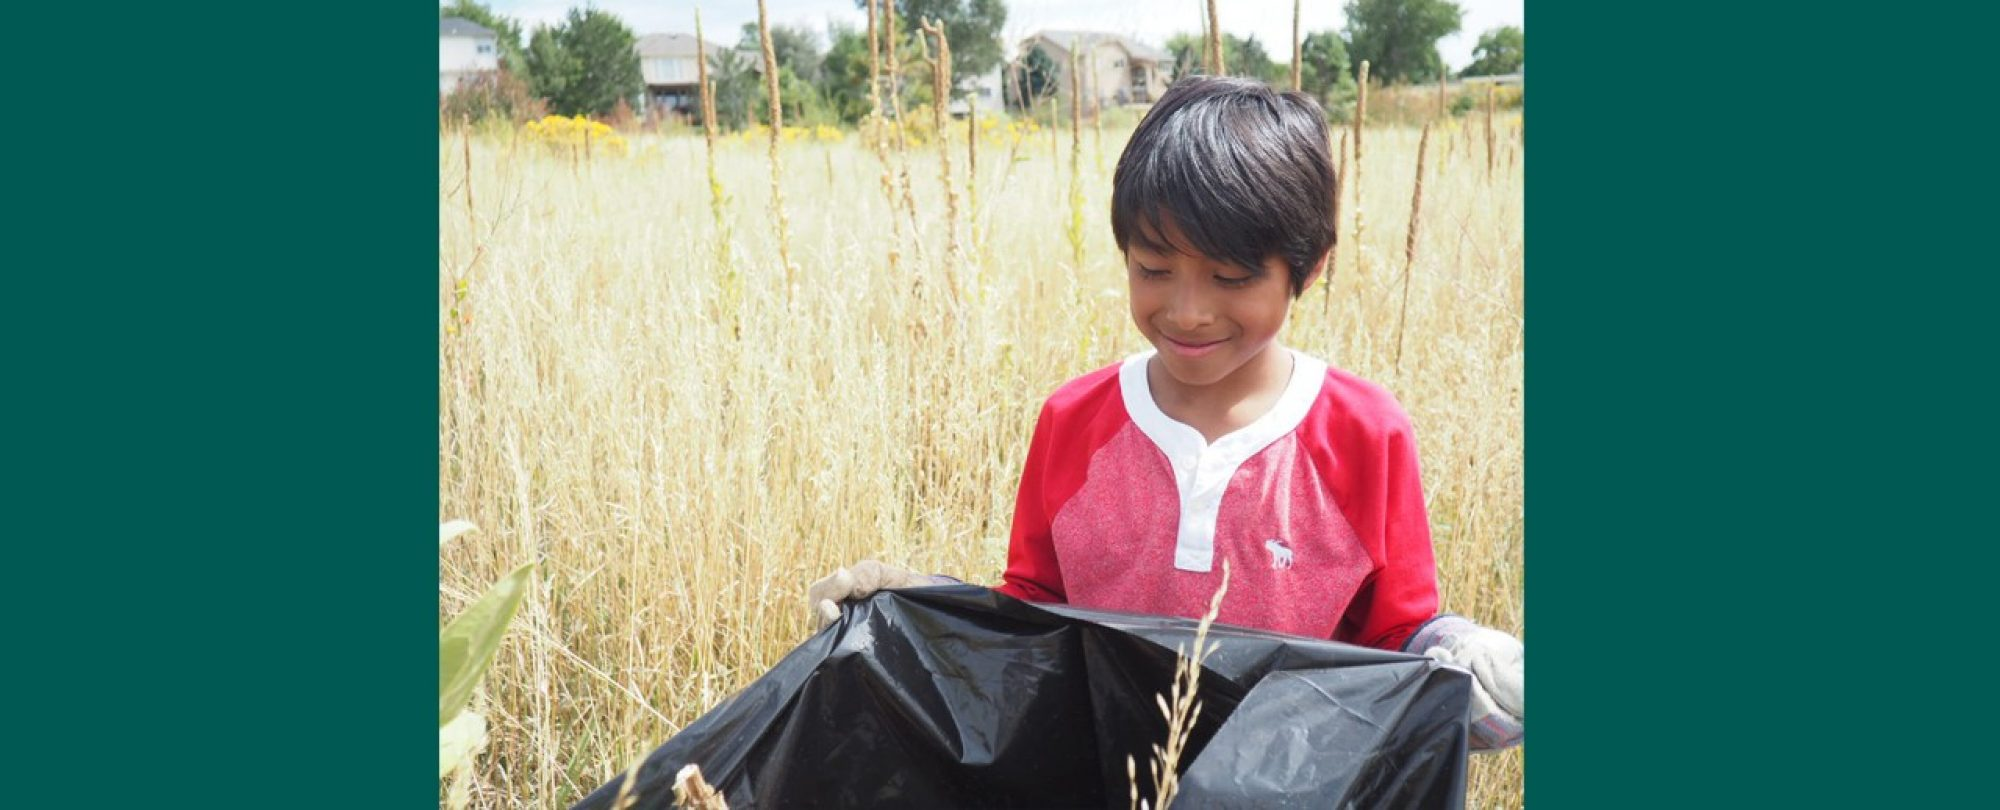 Boy picks up trash as part of an outdoor volunteer project.